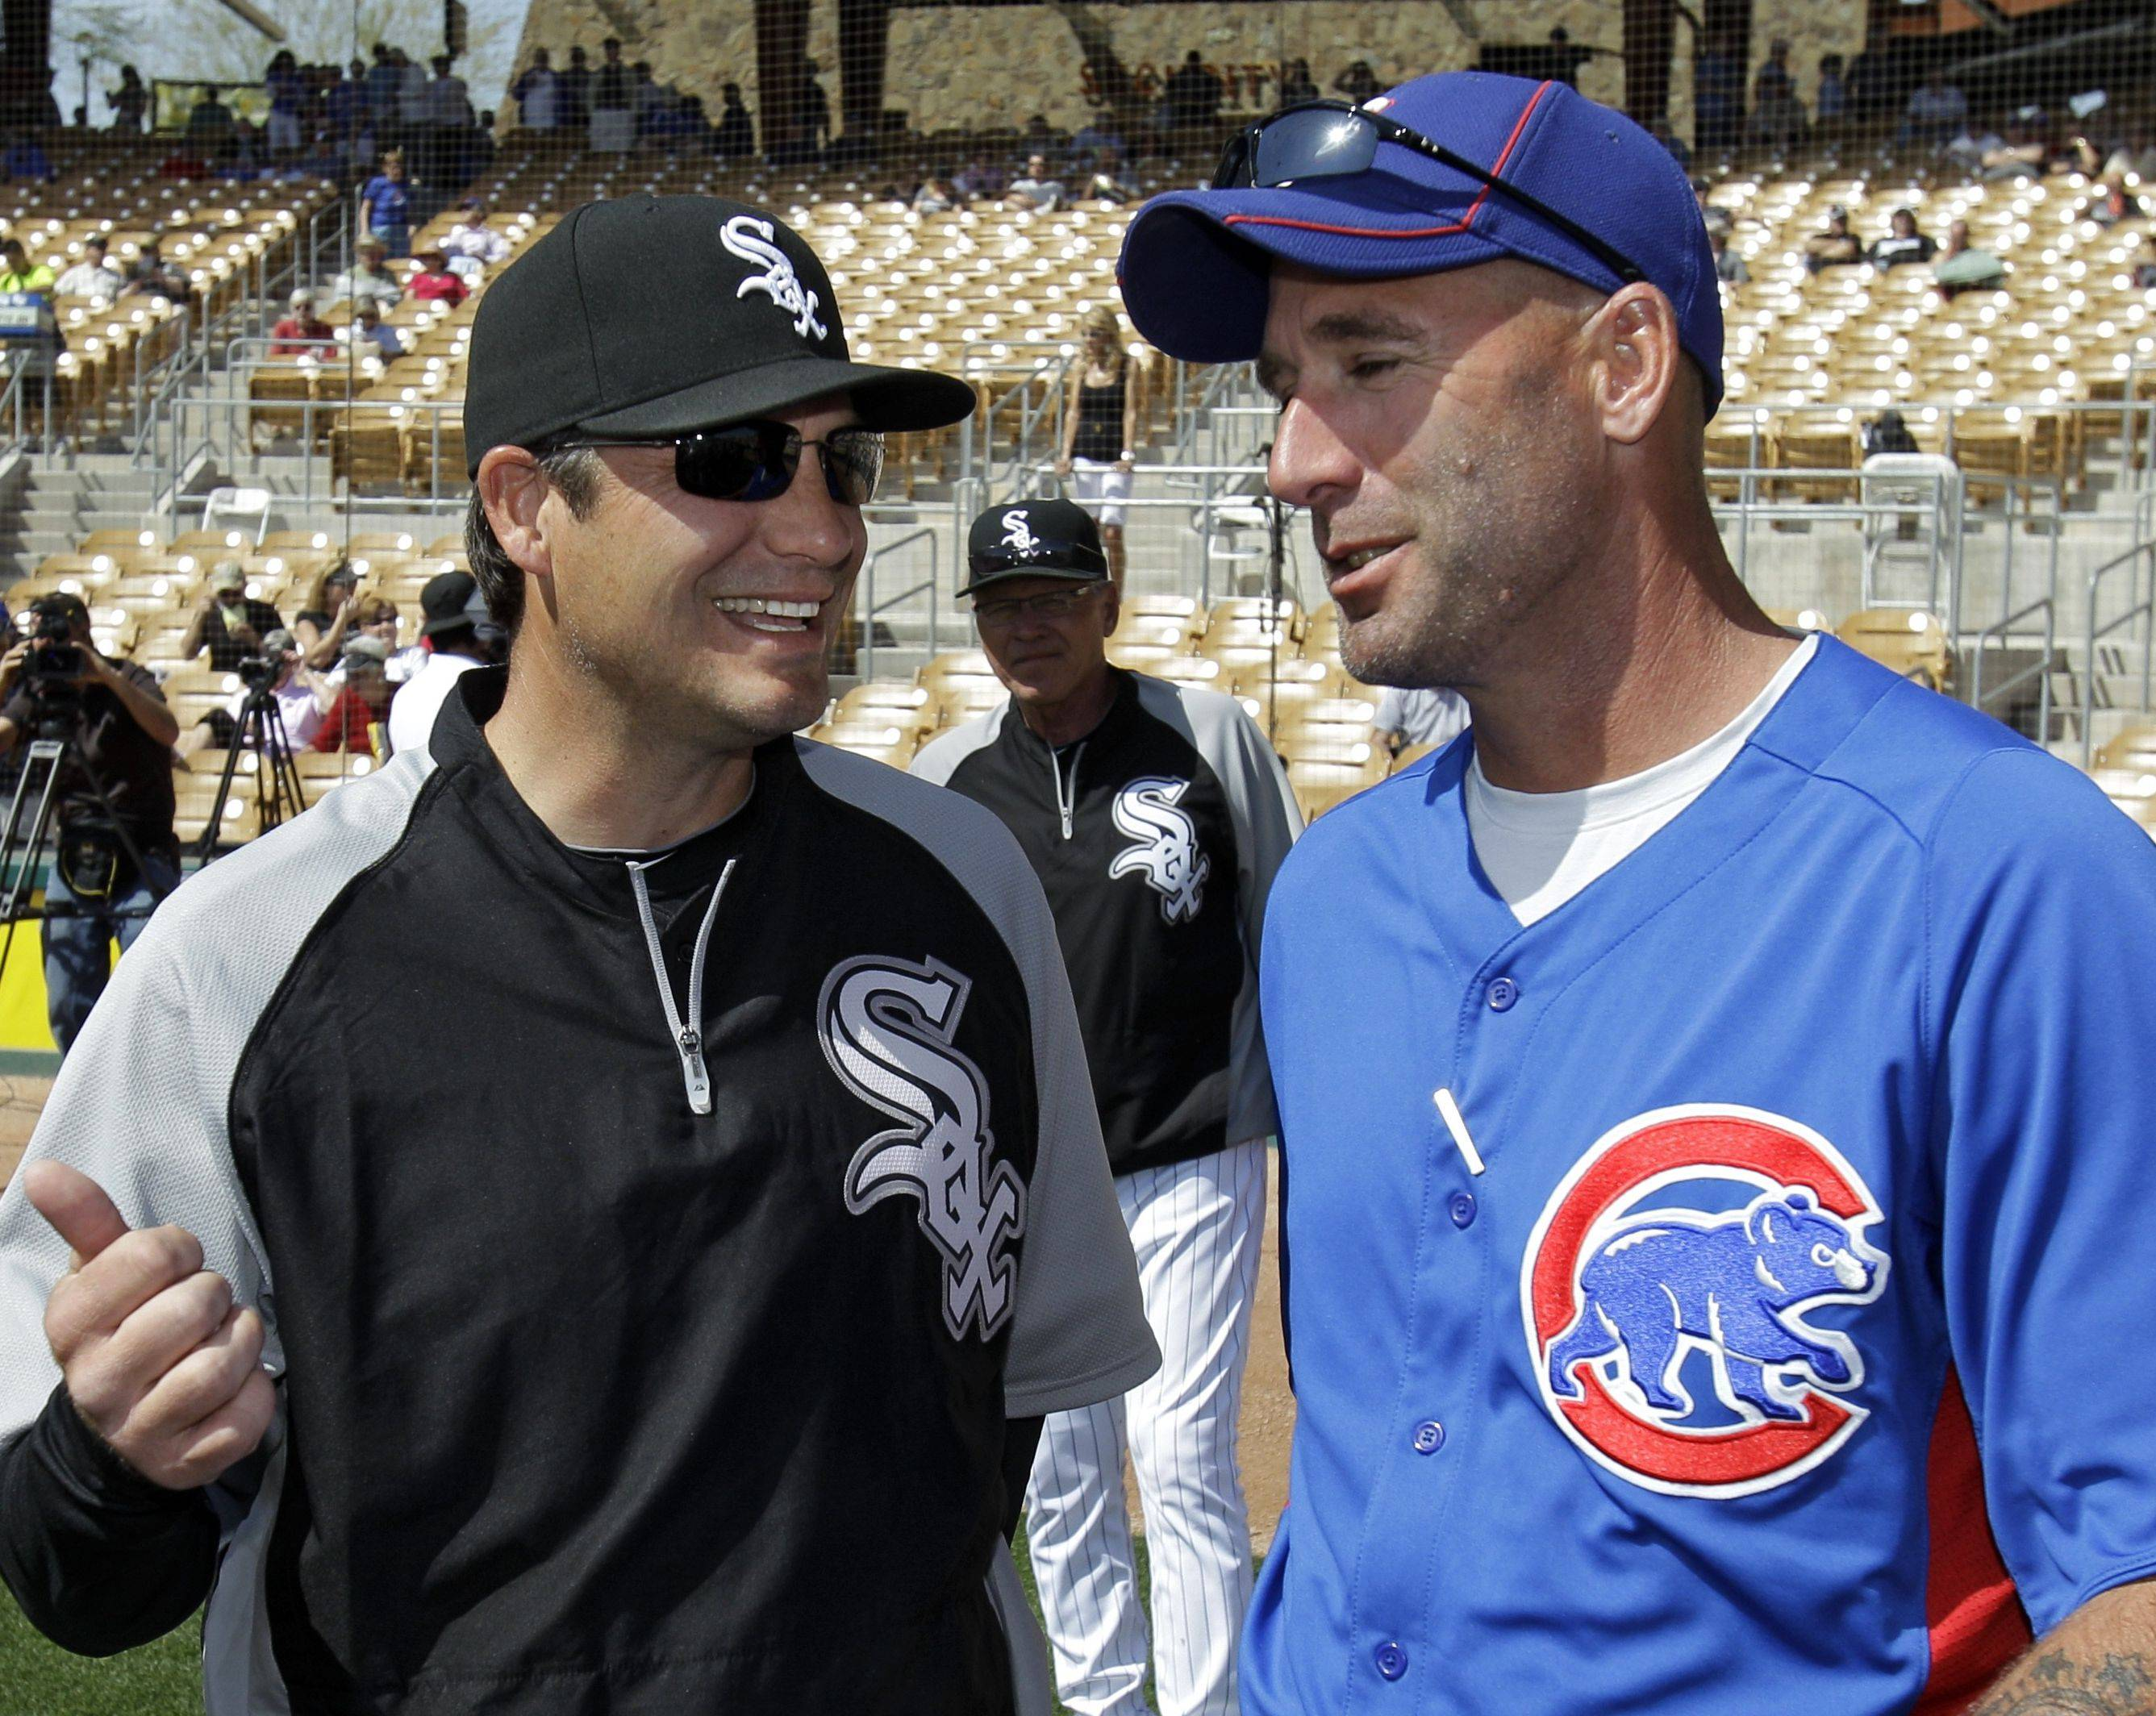 Robin Ventura, left, and the White Sox have a chance to compete this year in the AL Central if Alex Rios, Adam Dunn and Paul Konerko can put together big seasons. As for Dale Sveum's Cubs? If all goes right, the North Siders should have a shot at the postseason by 2015.